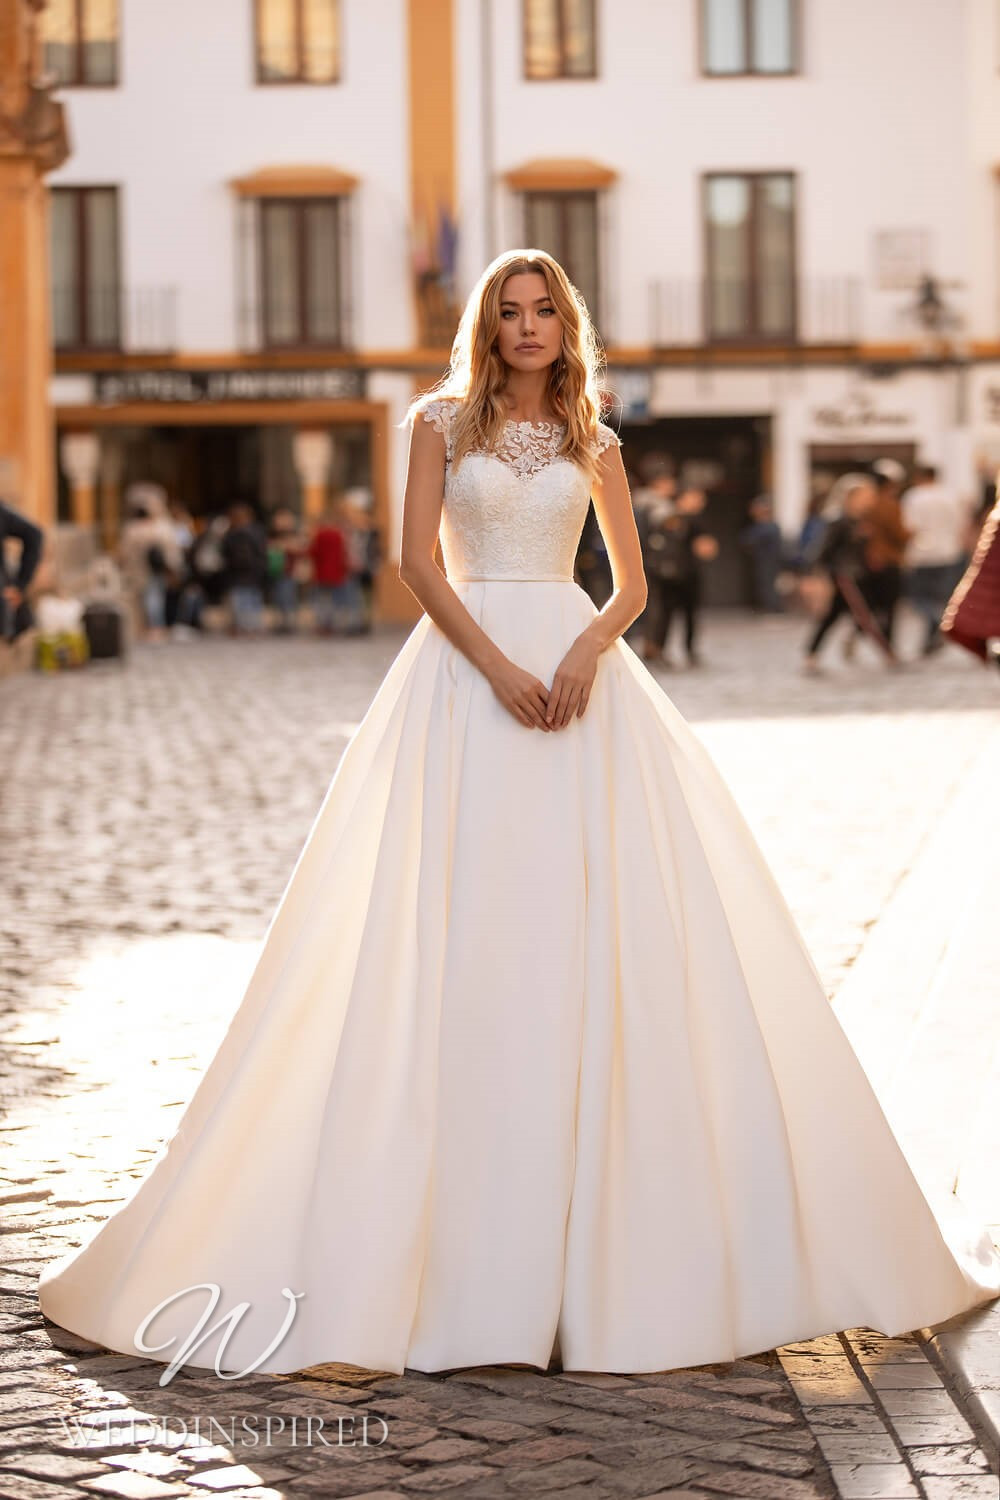 An Essential by Lussano 2021 lace and satin princess wedding dress with cap sleeves